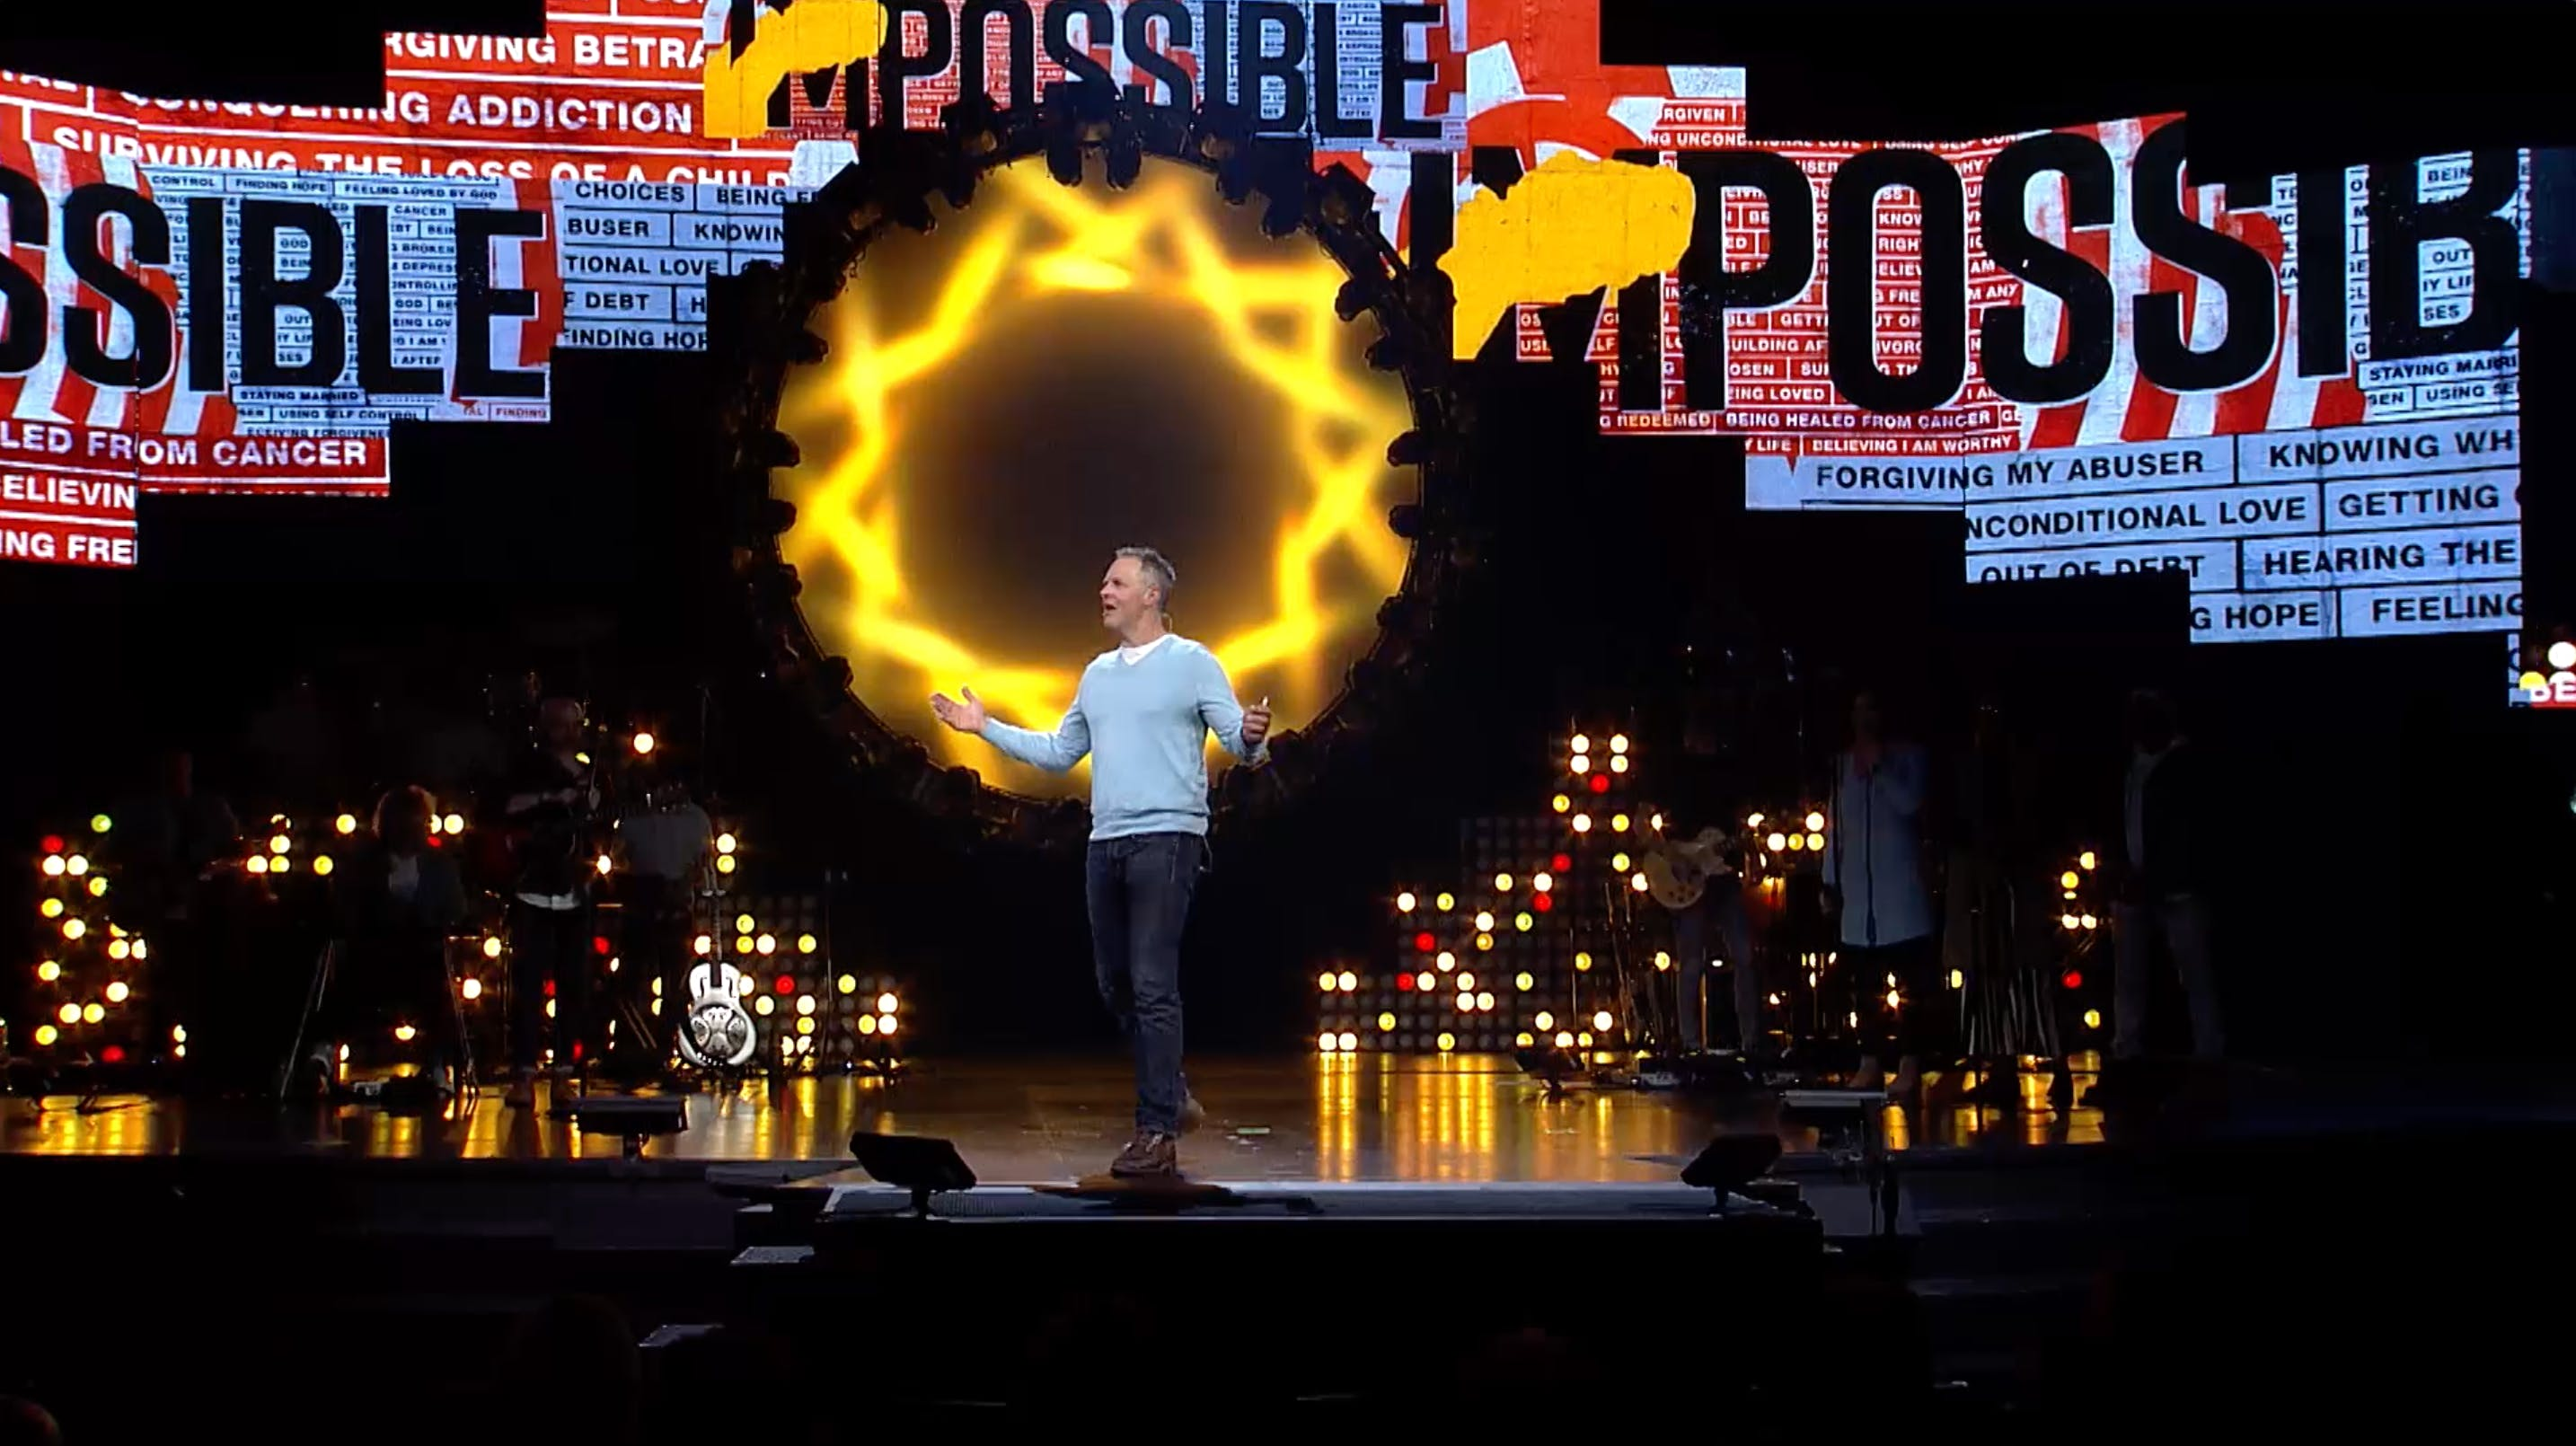 Easter | The Impossible Becomes Possible